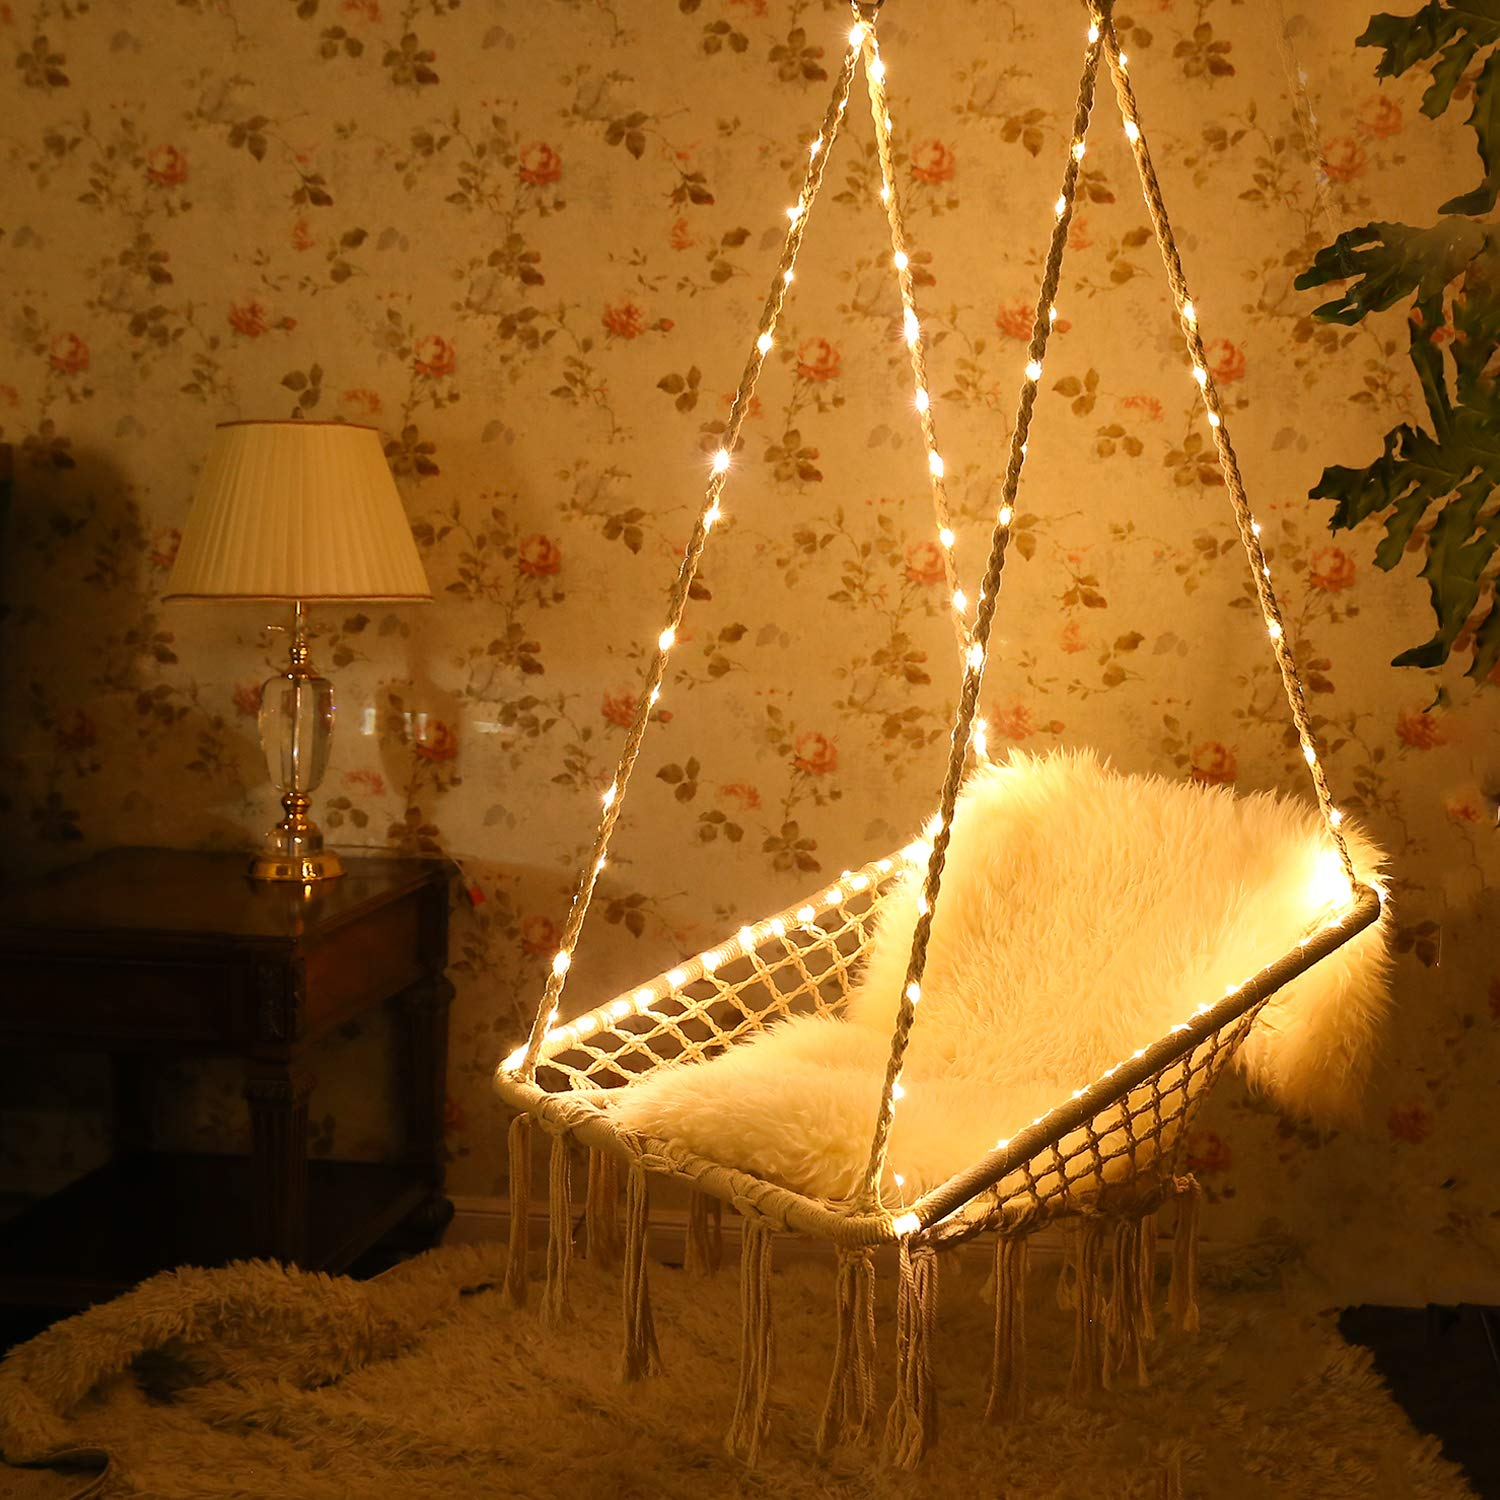 KINDEN Hammock Chair with Lights – Cotton Square Shape for Patio Bedroom Balcony